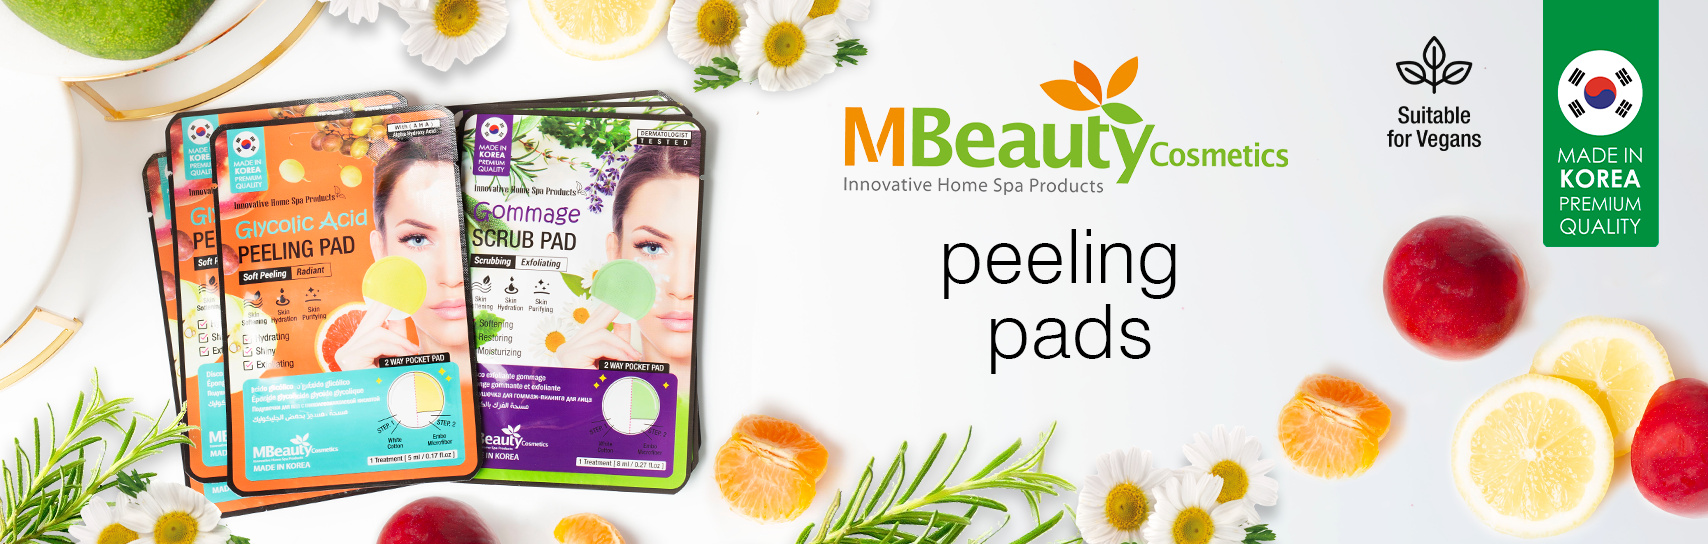 [MBeauty - cleansing pads - products]